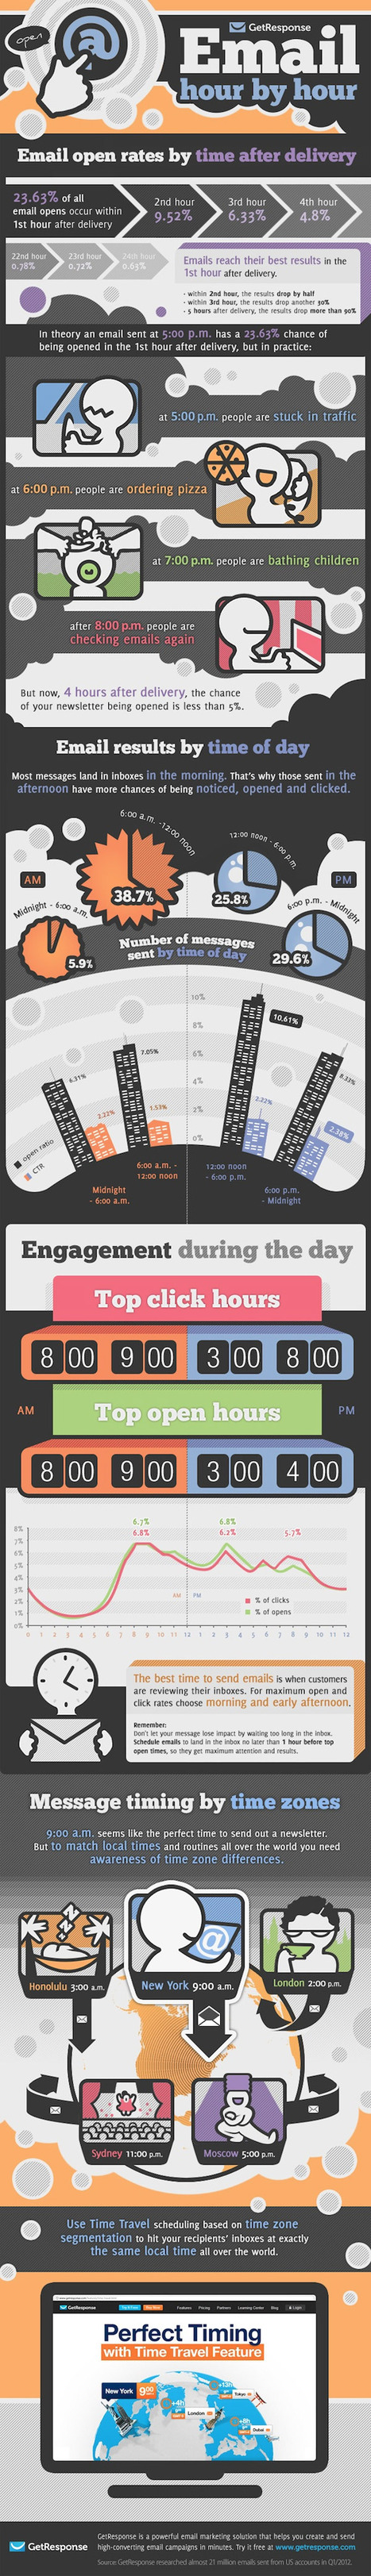 The Best Time Of The Day To Send Emails [INFOGRAPHIC] | Social Media Resources & e-learning | Scoop.it